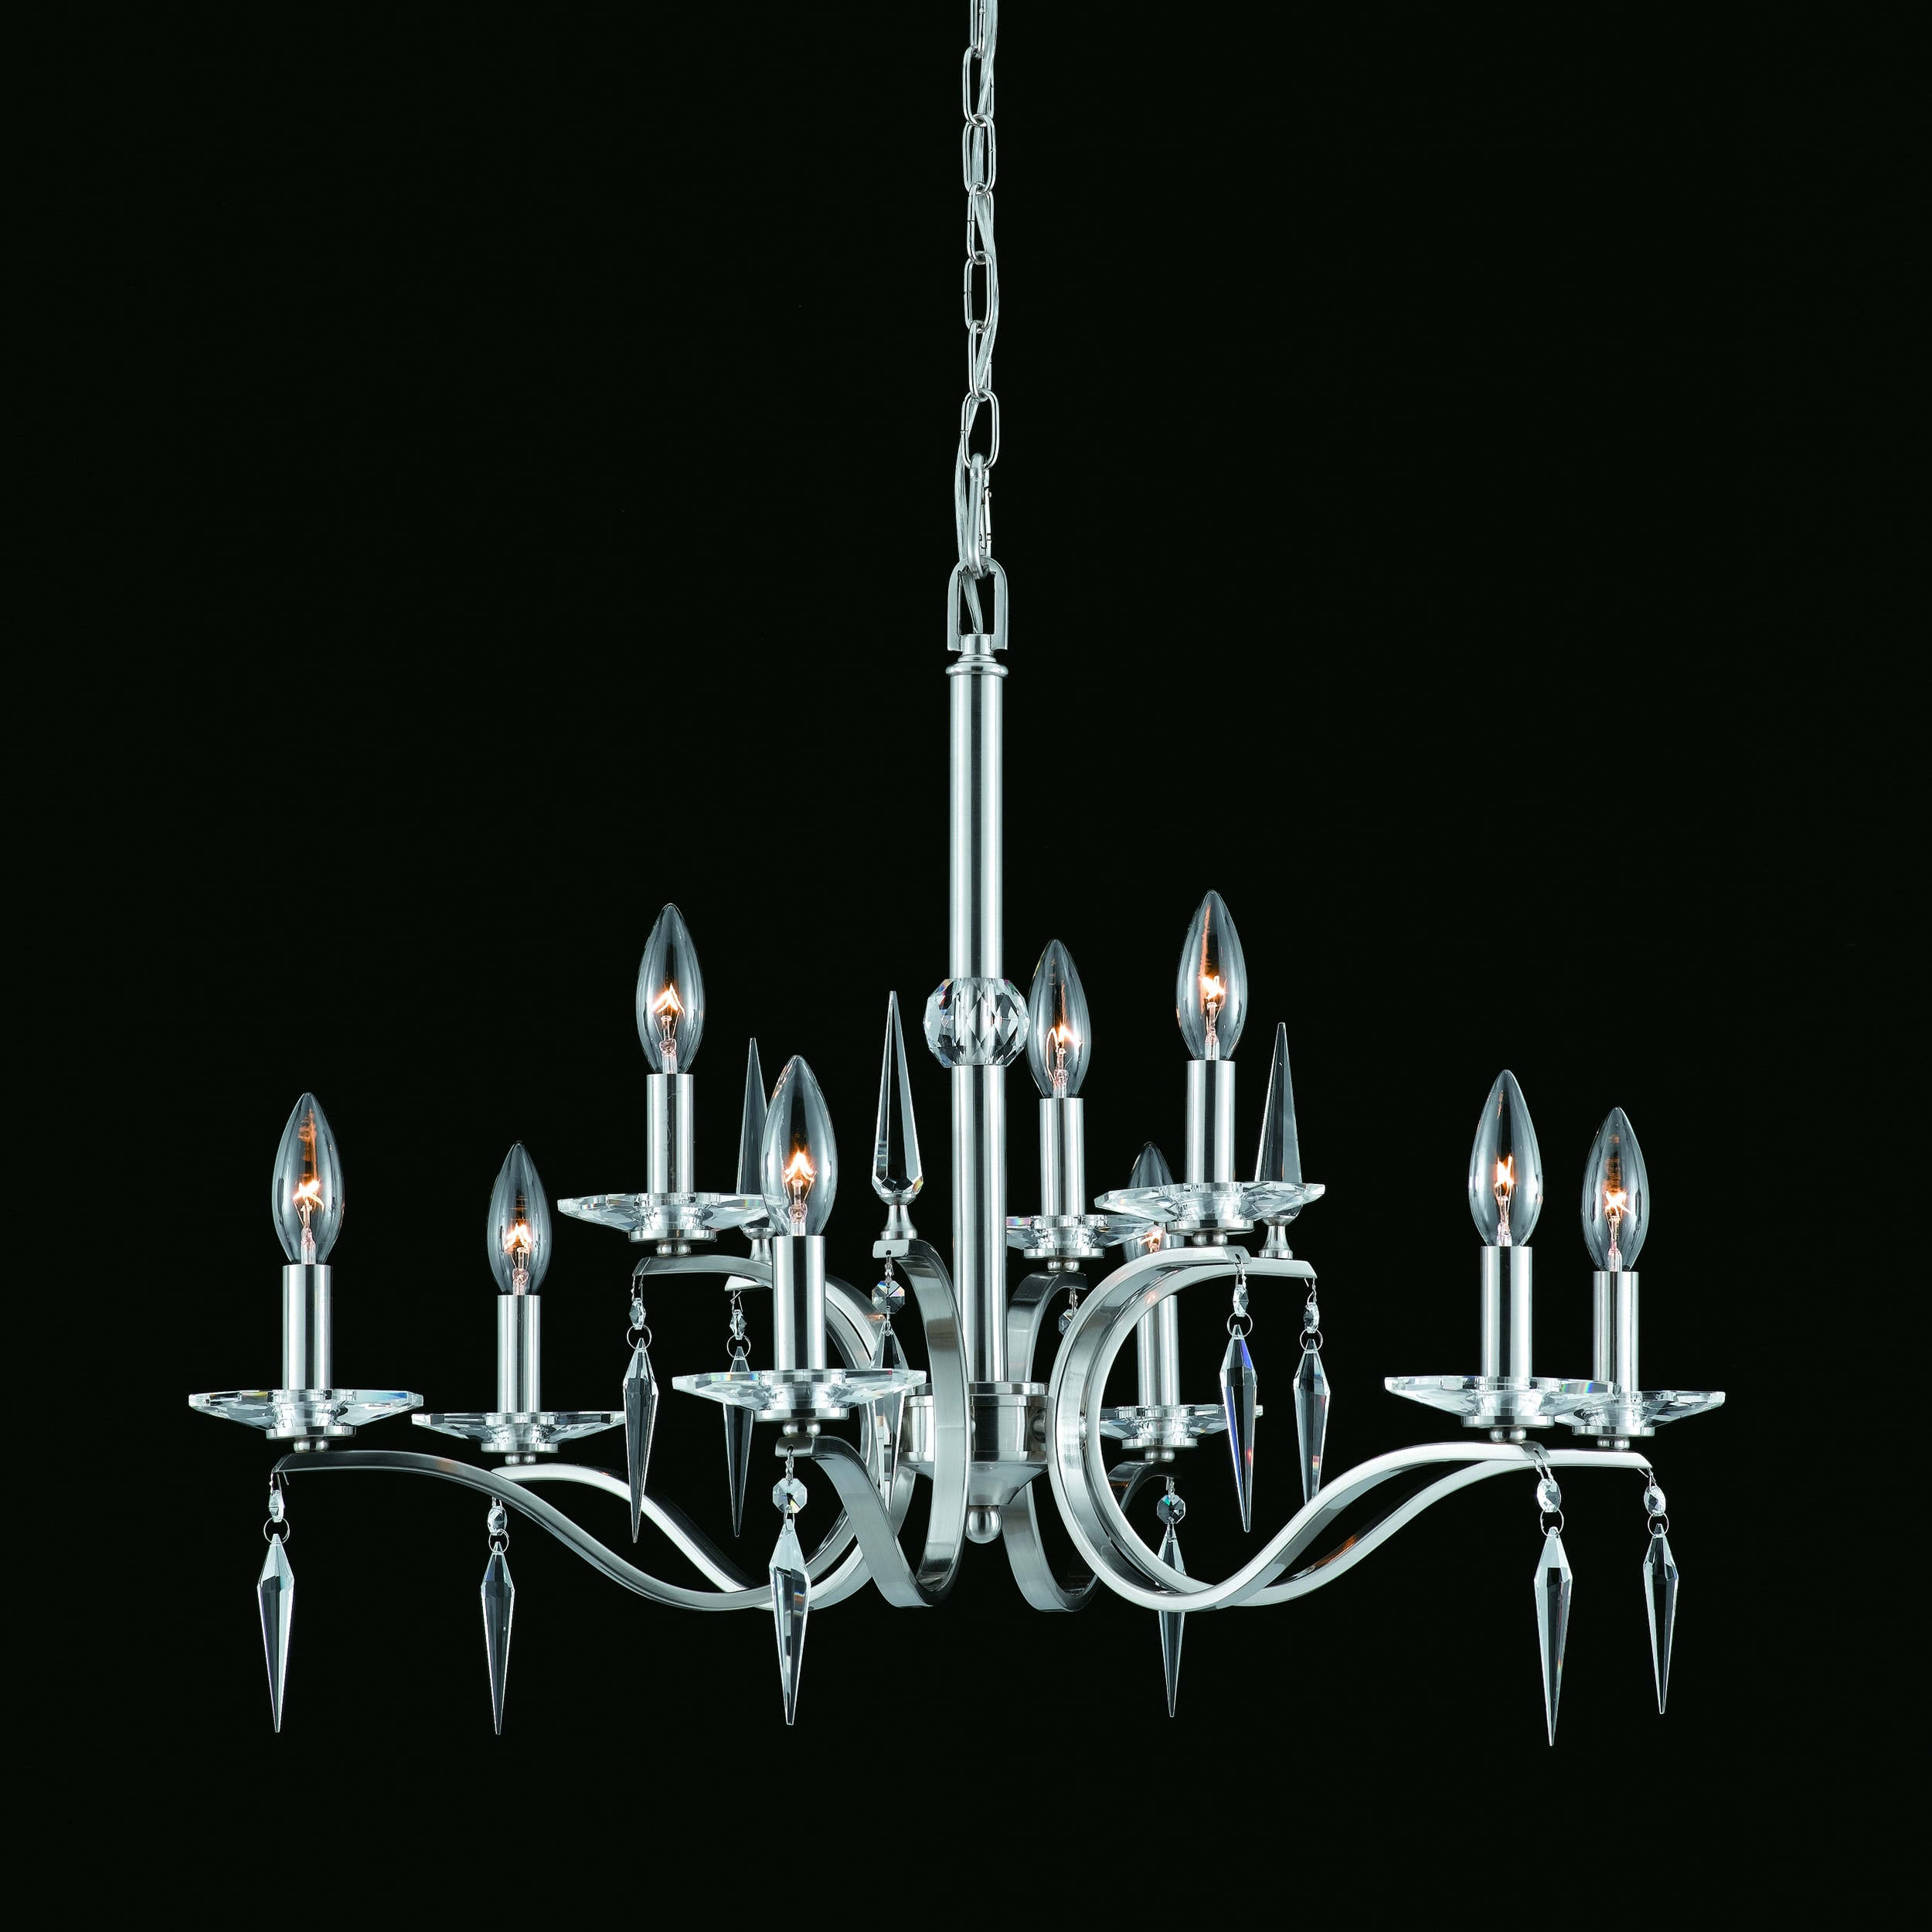 The Swan 9-light Chandelier in Satin Nickel Finish